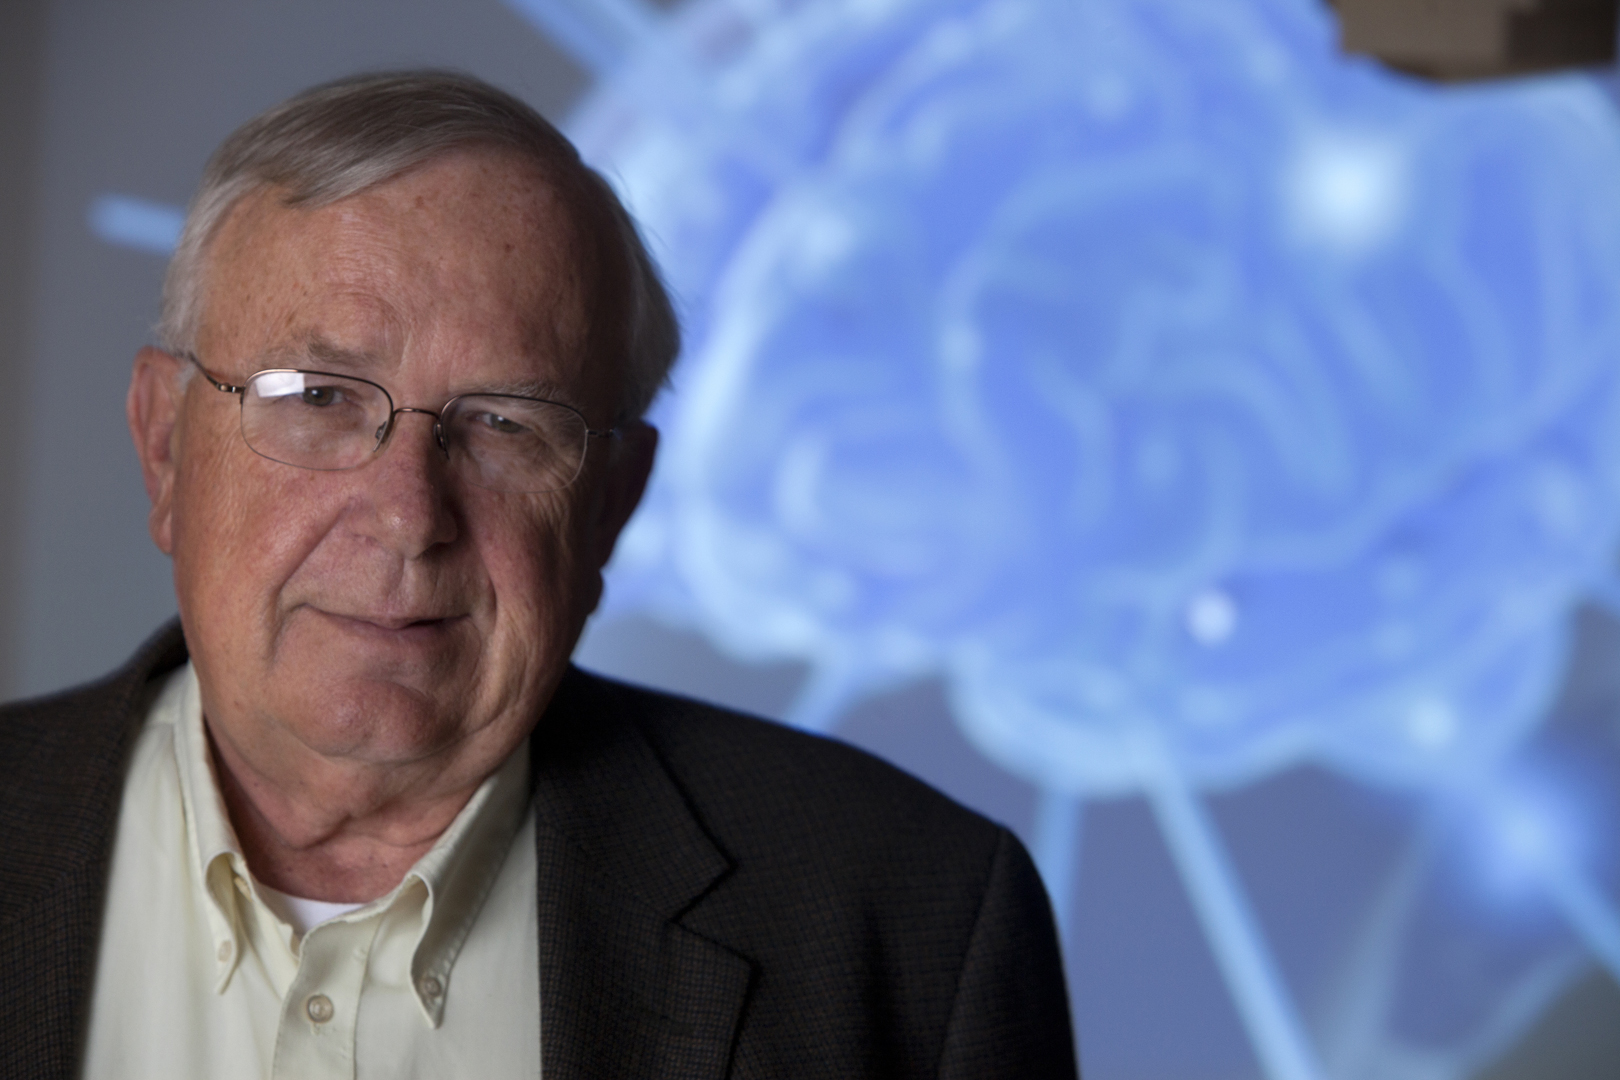 Michael Merzenich on Neuroplasticity